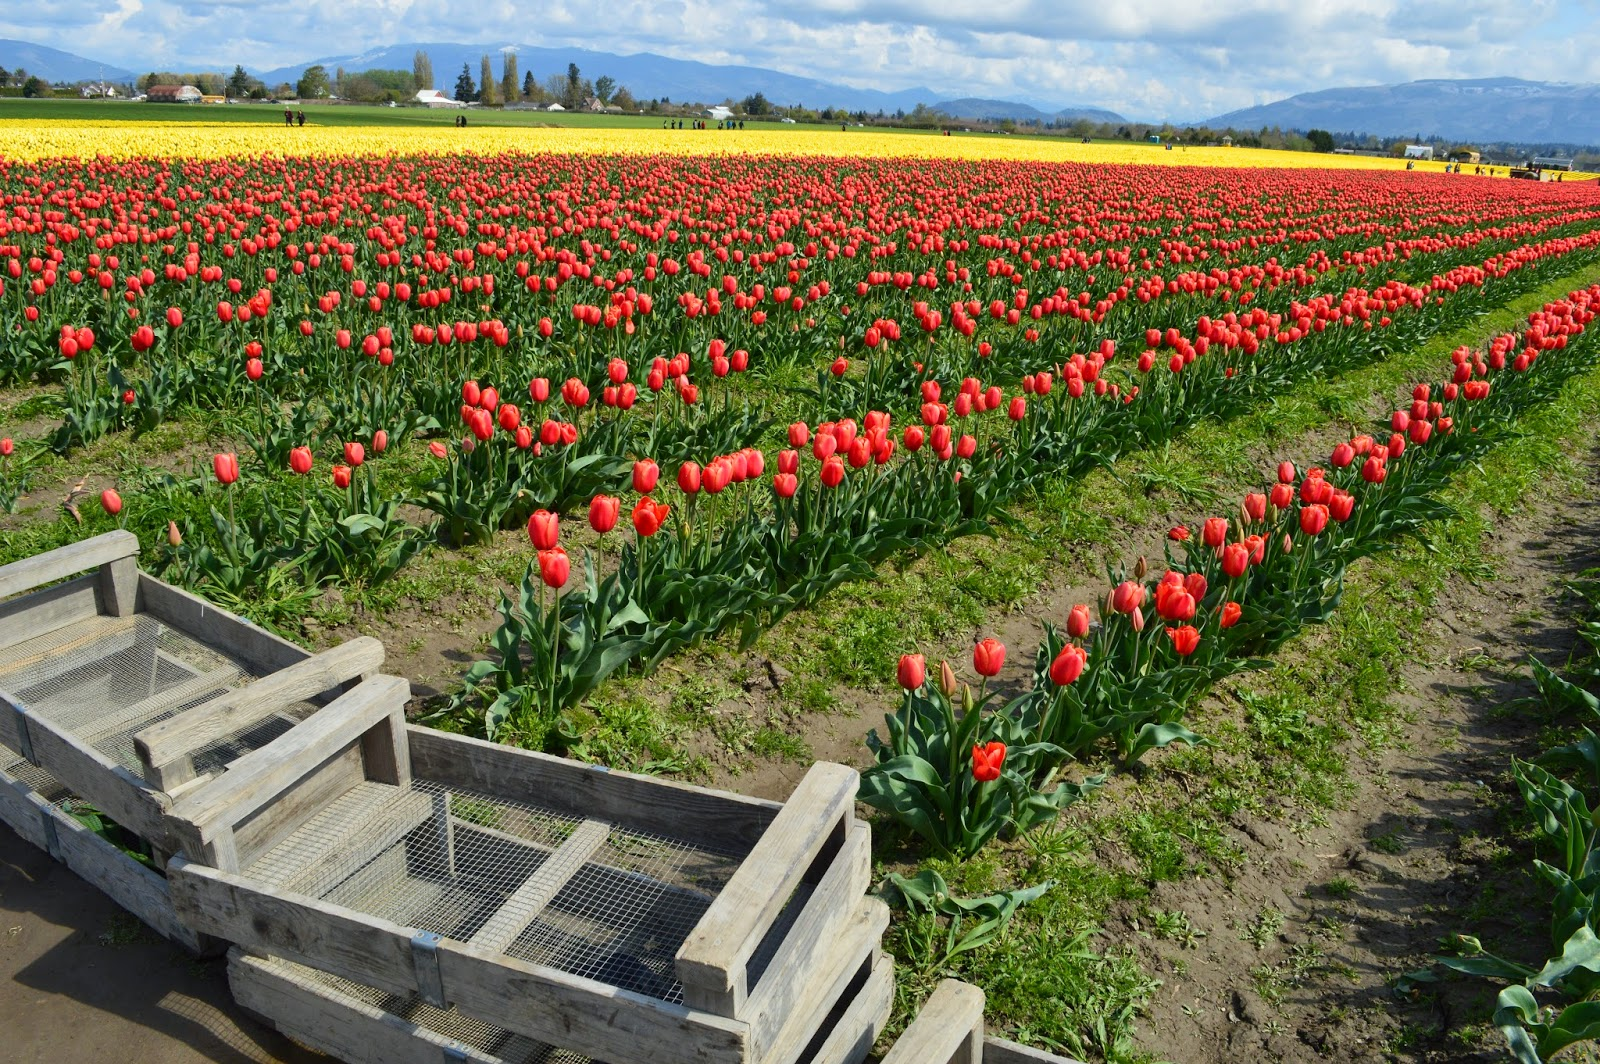 Wooden crates in the tulip field.